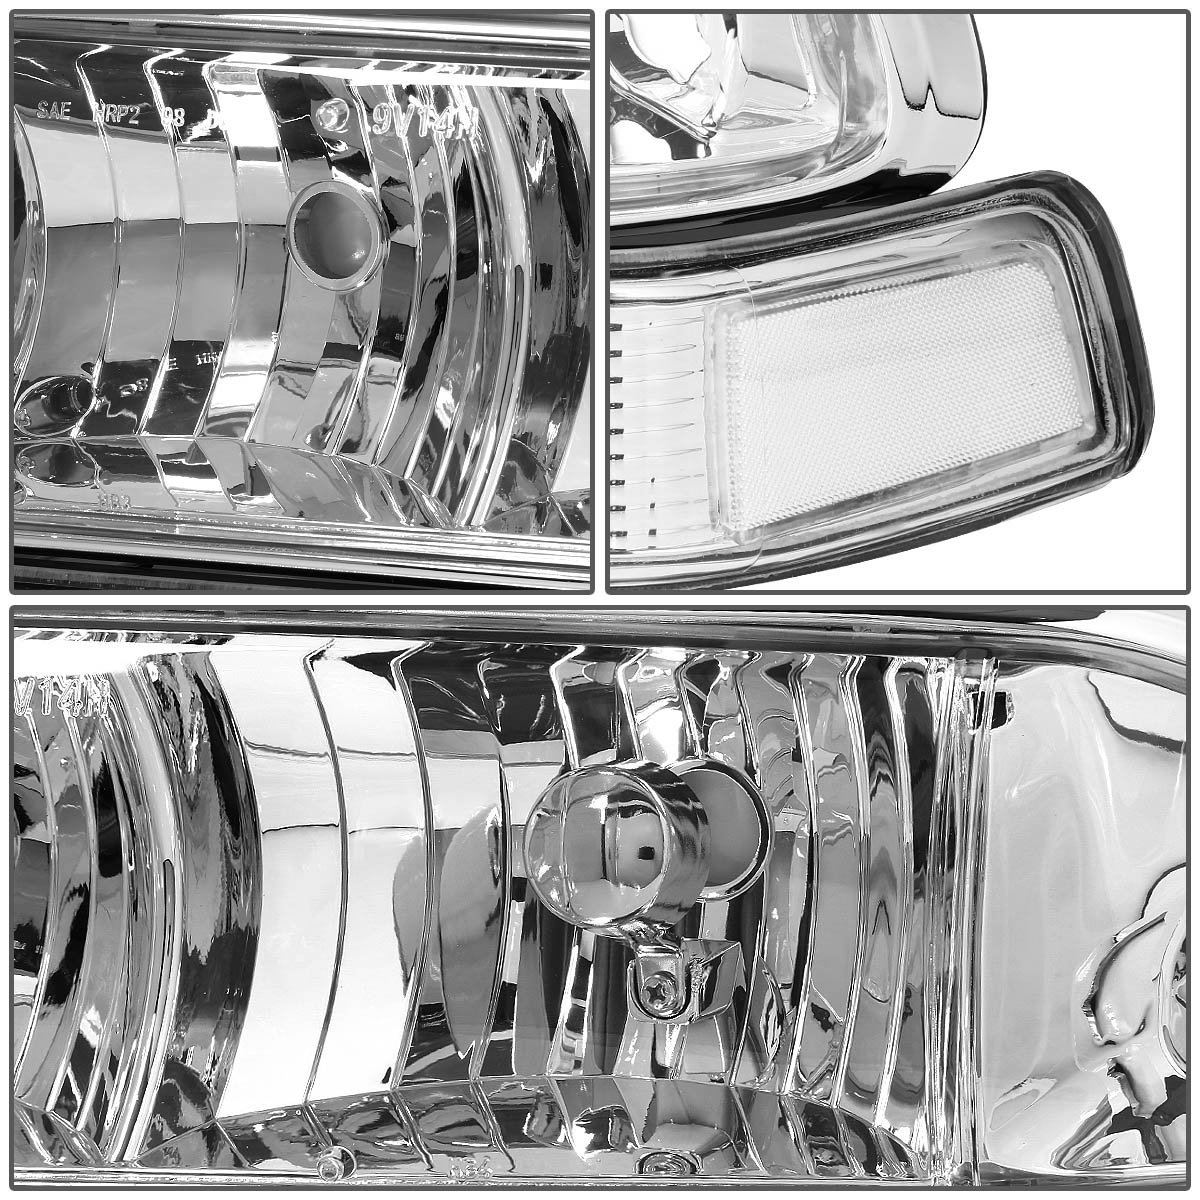 Hid Xenon 98 04 Chevy S10 Blazer Euro Style Crystal Headlights 1998 Wiring Diagram Accessories Replacement Bumper Lens